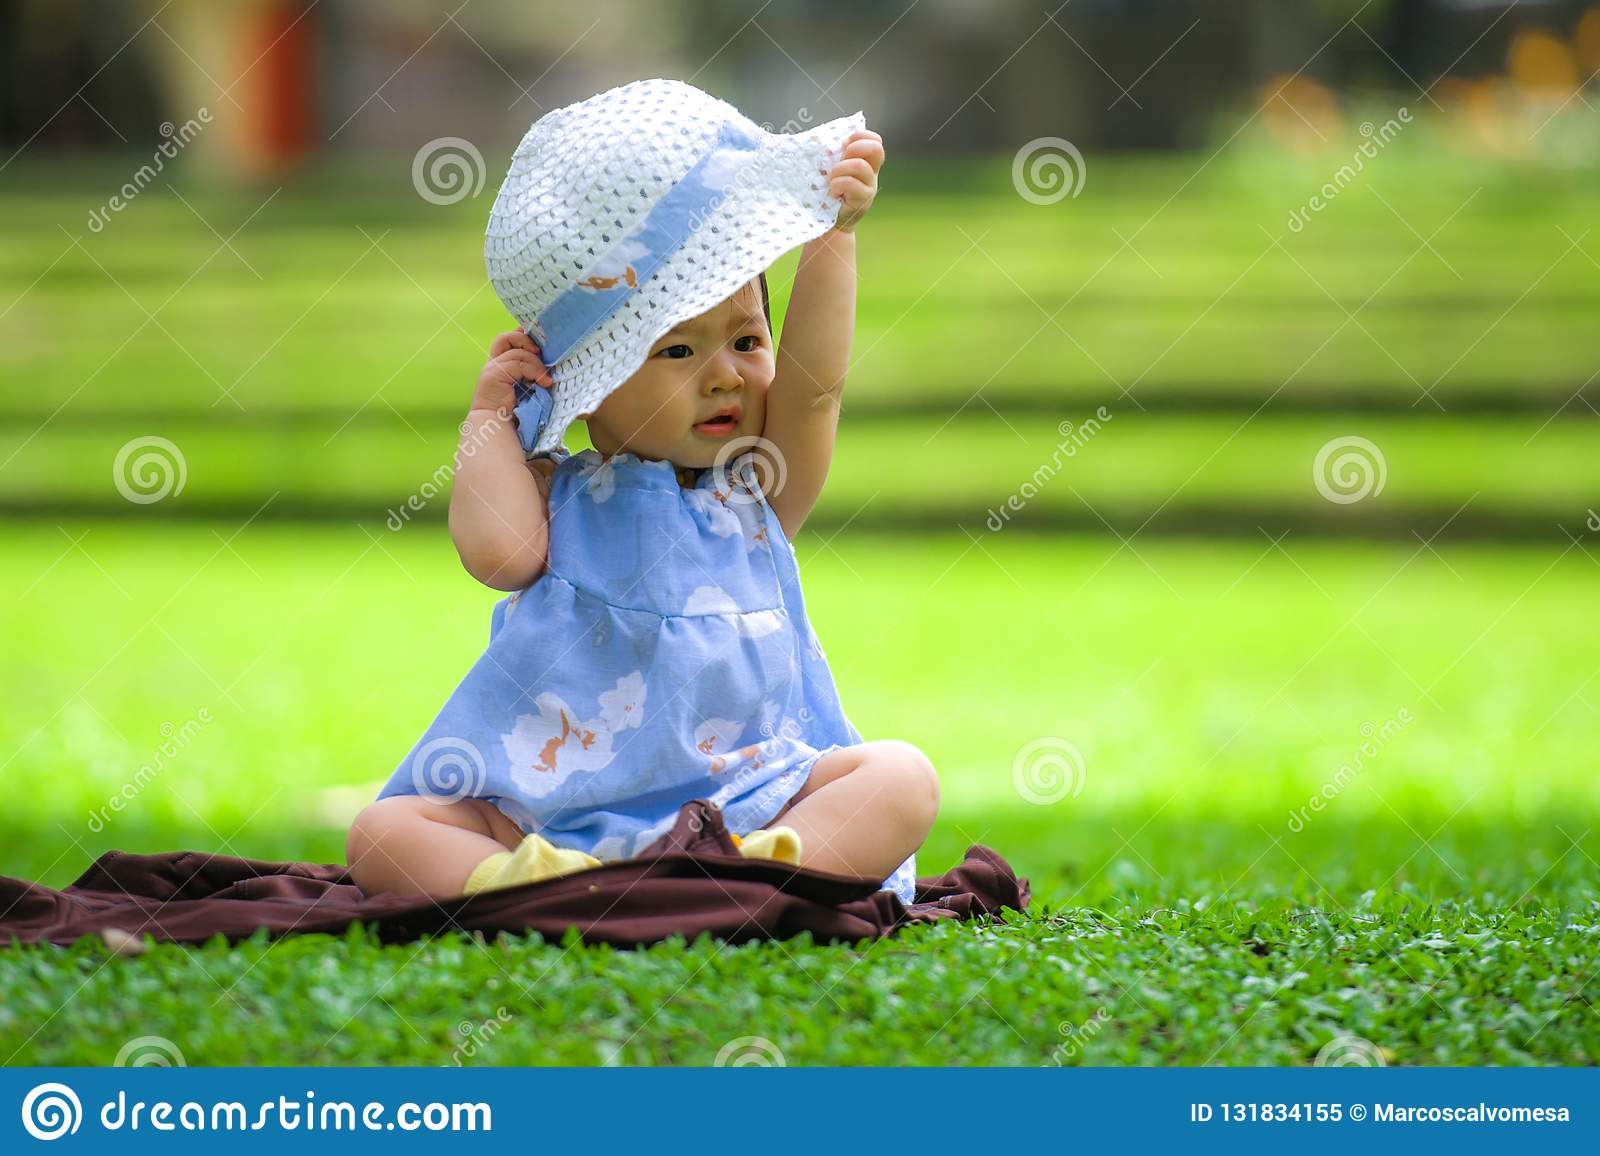 candid portrait of sweet and adorable Asian Korean baby girl 3 or 4 months old playing with hat alone at city park